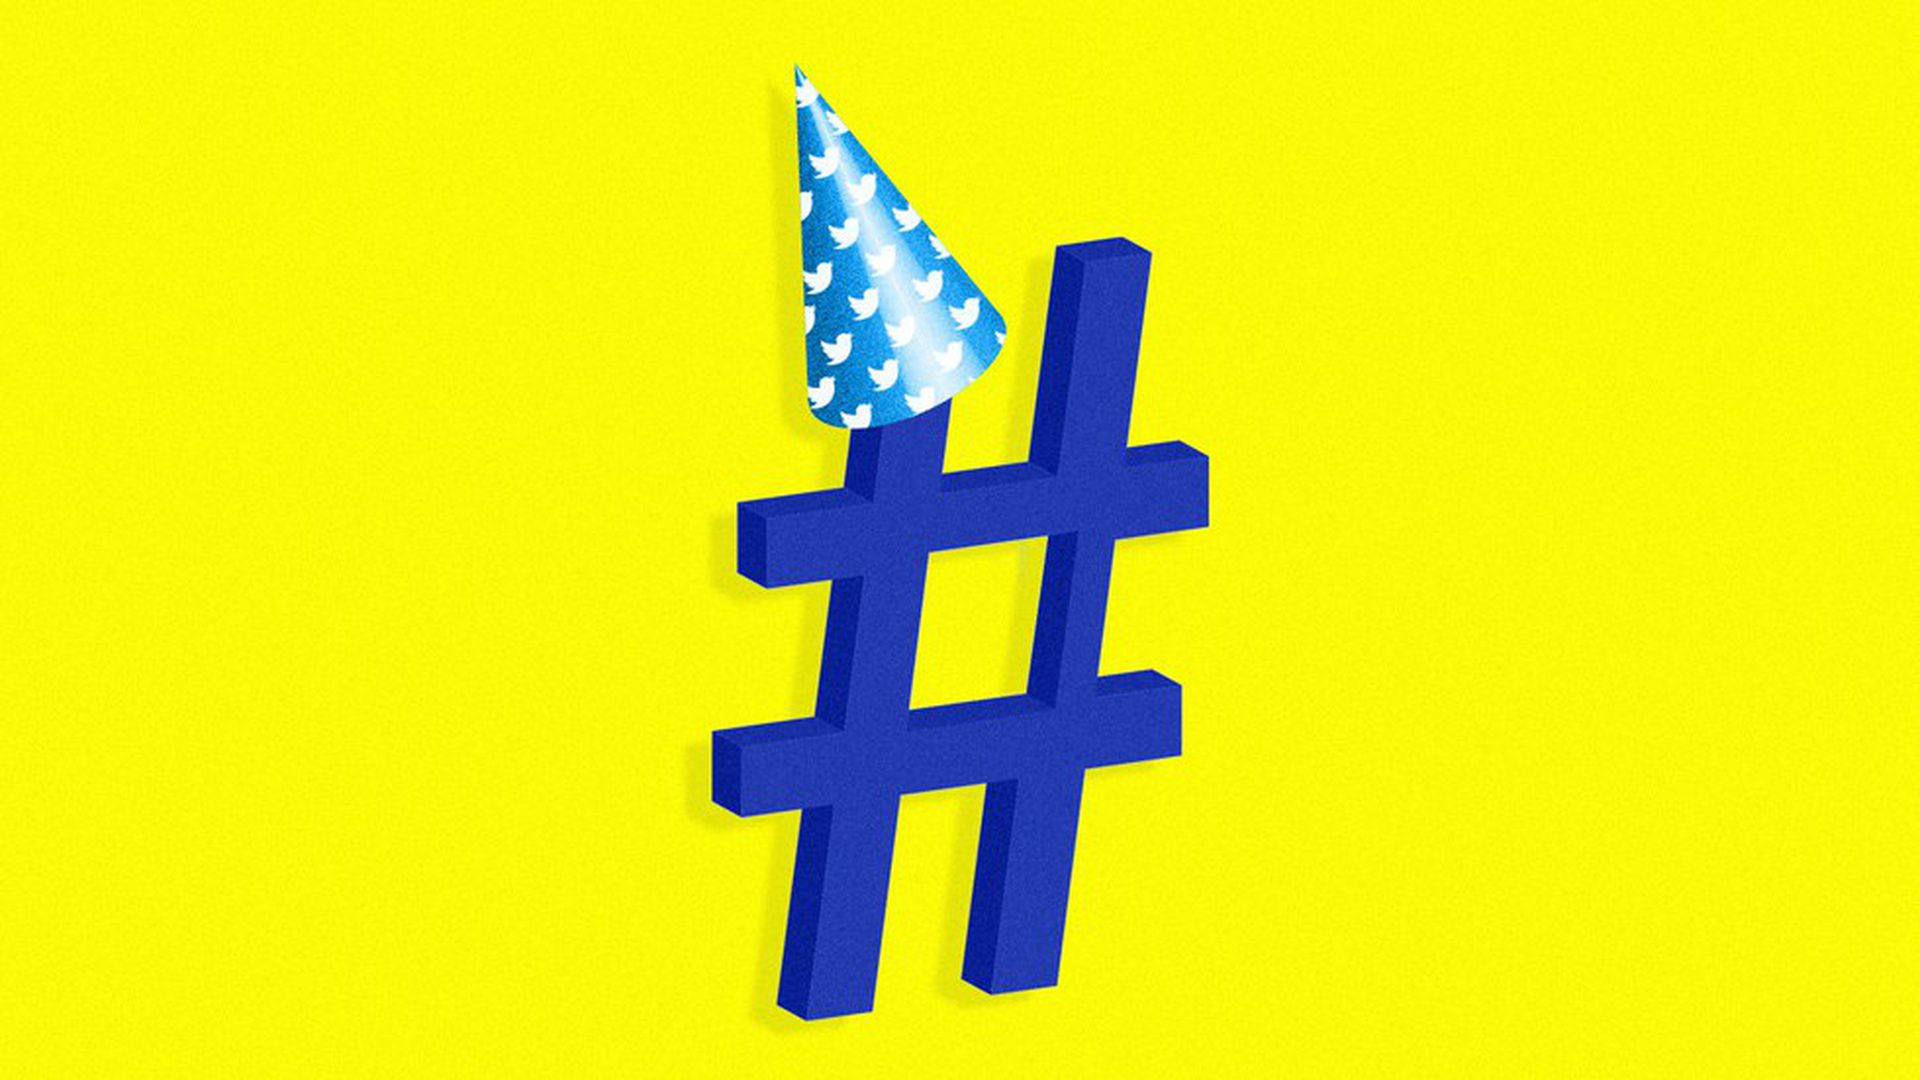 The Twitter hashtag is 10